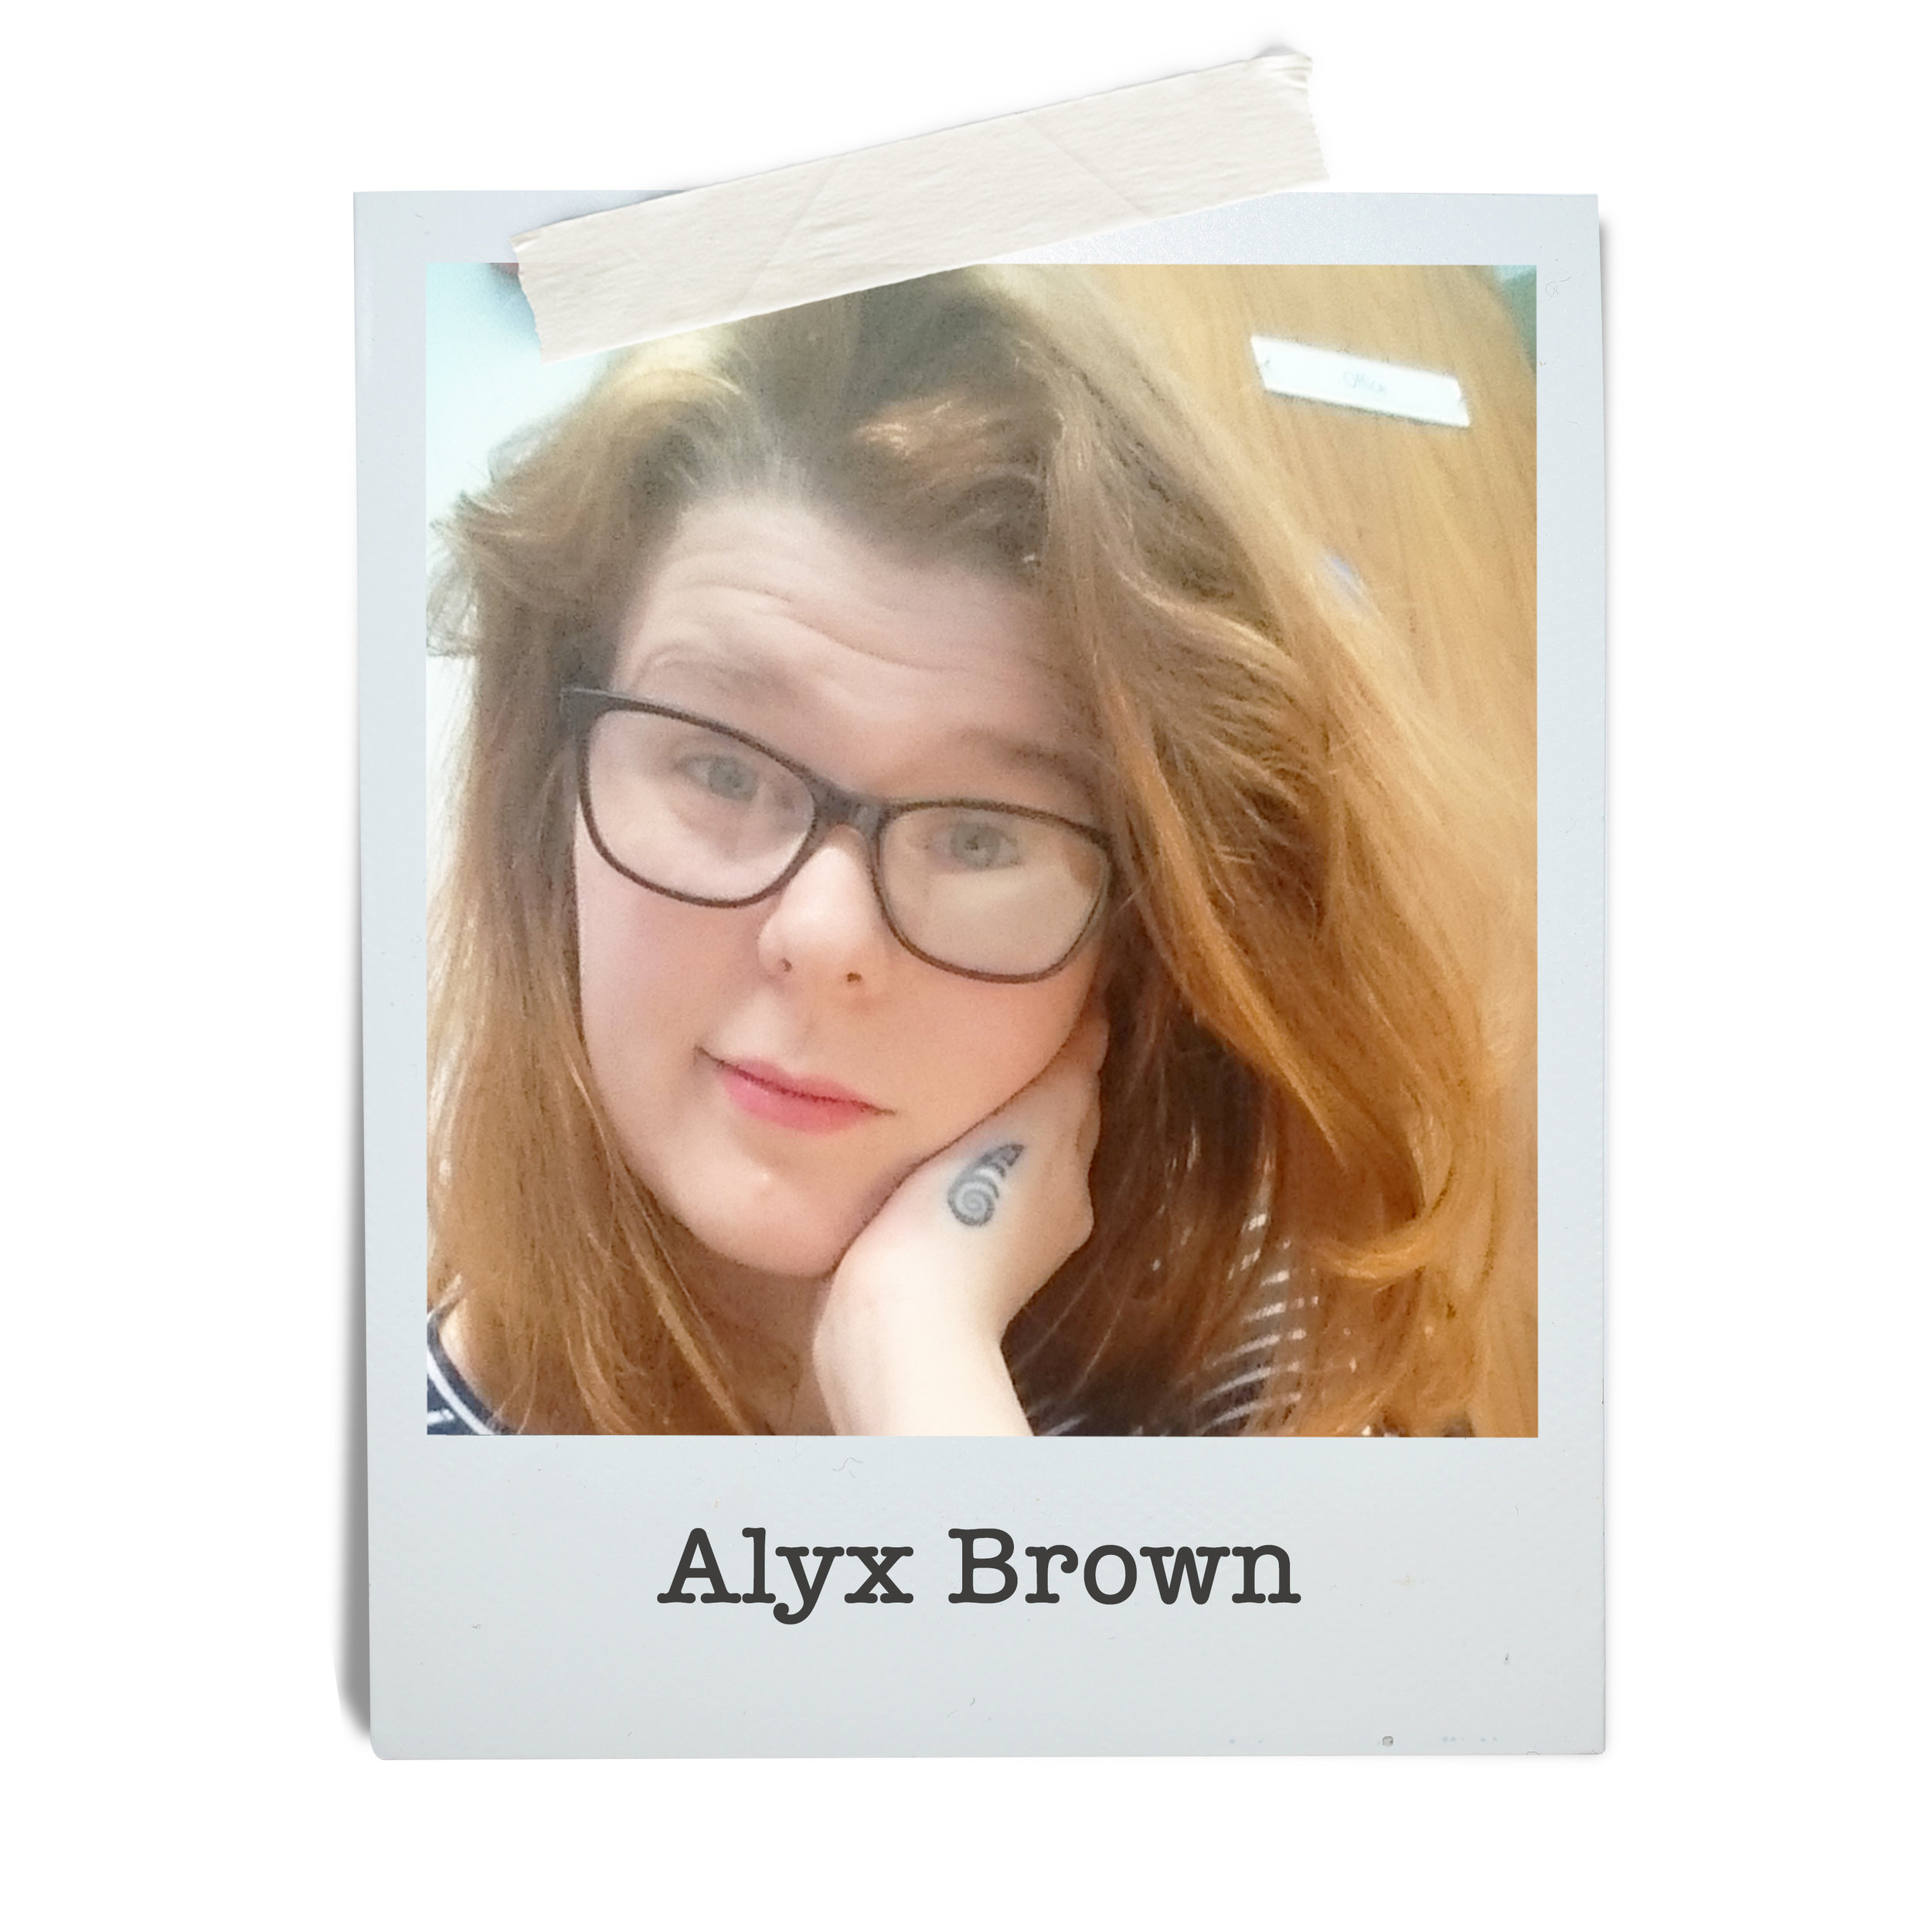 Alyx Brown